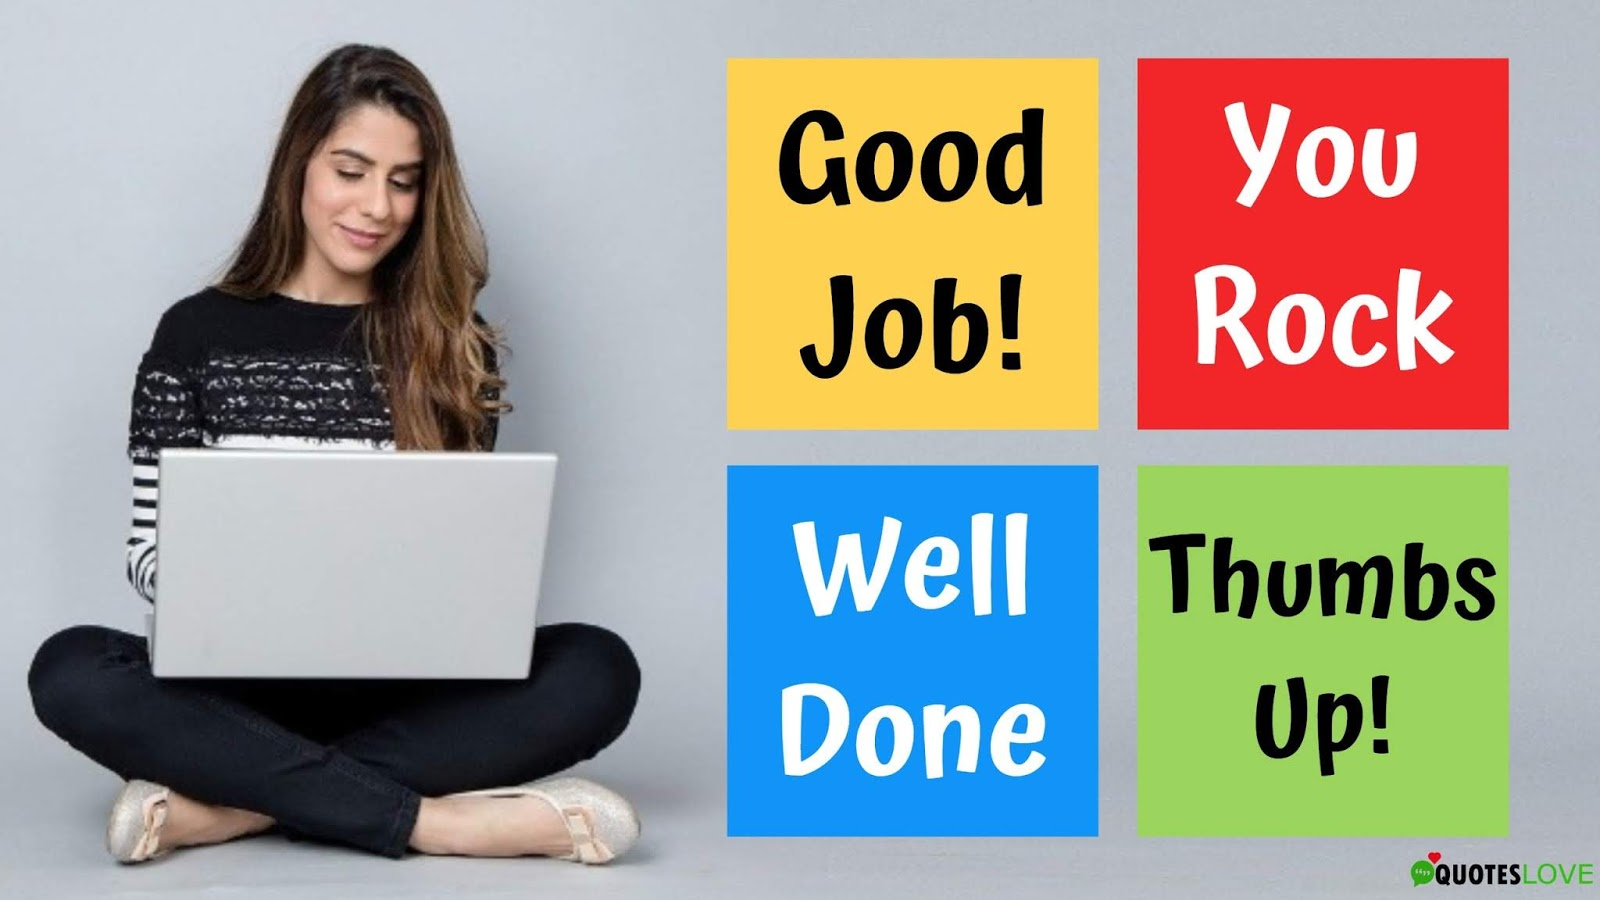 (Best) Inspirational Quotes For Employee Appreciation Sayings To Thank Them